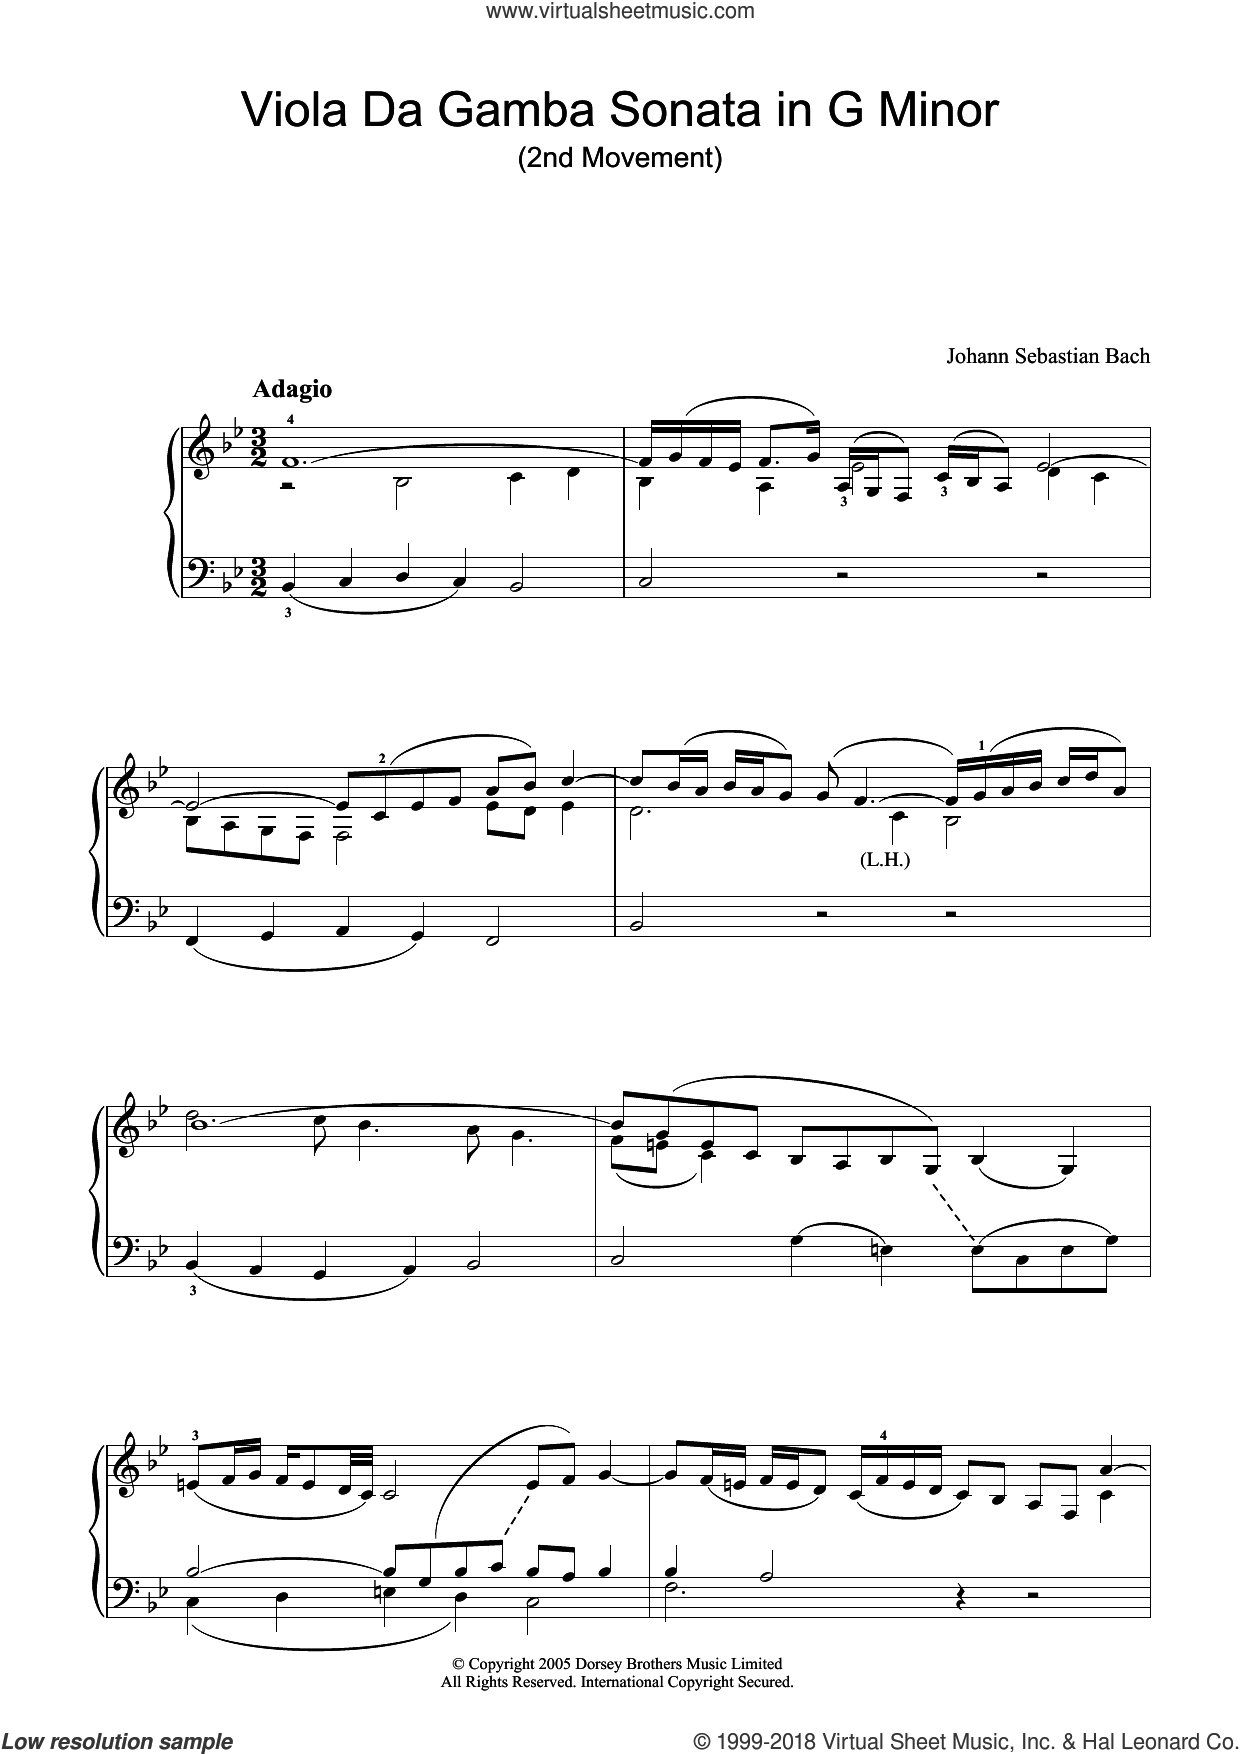 Viola da Gamba Sonata In G Minor (2nd Movement) sheet music for piano solo by Johann Sebastian Bach, classical score, intermediate skill level